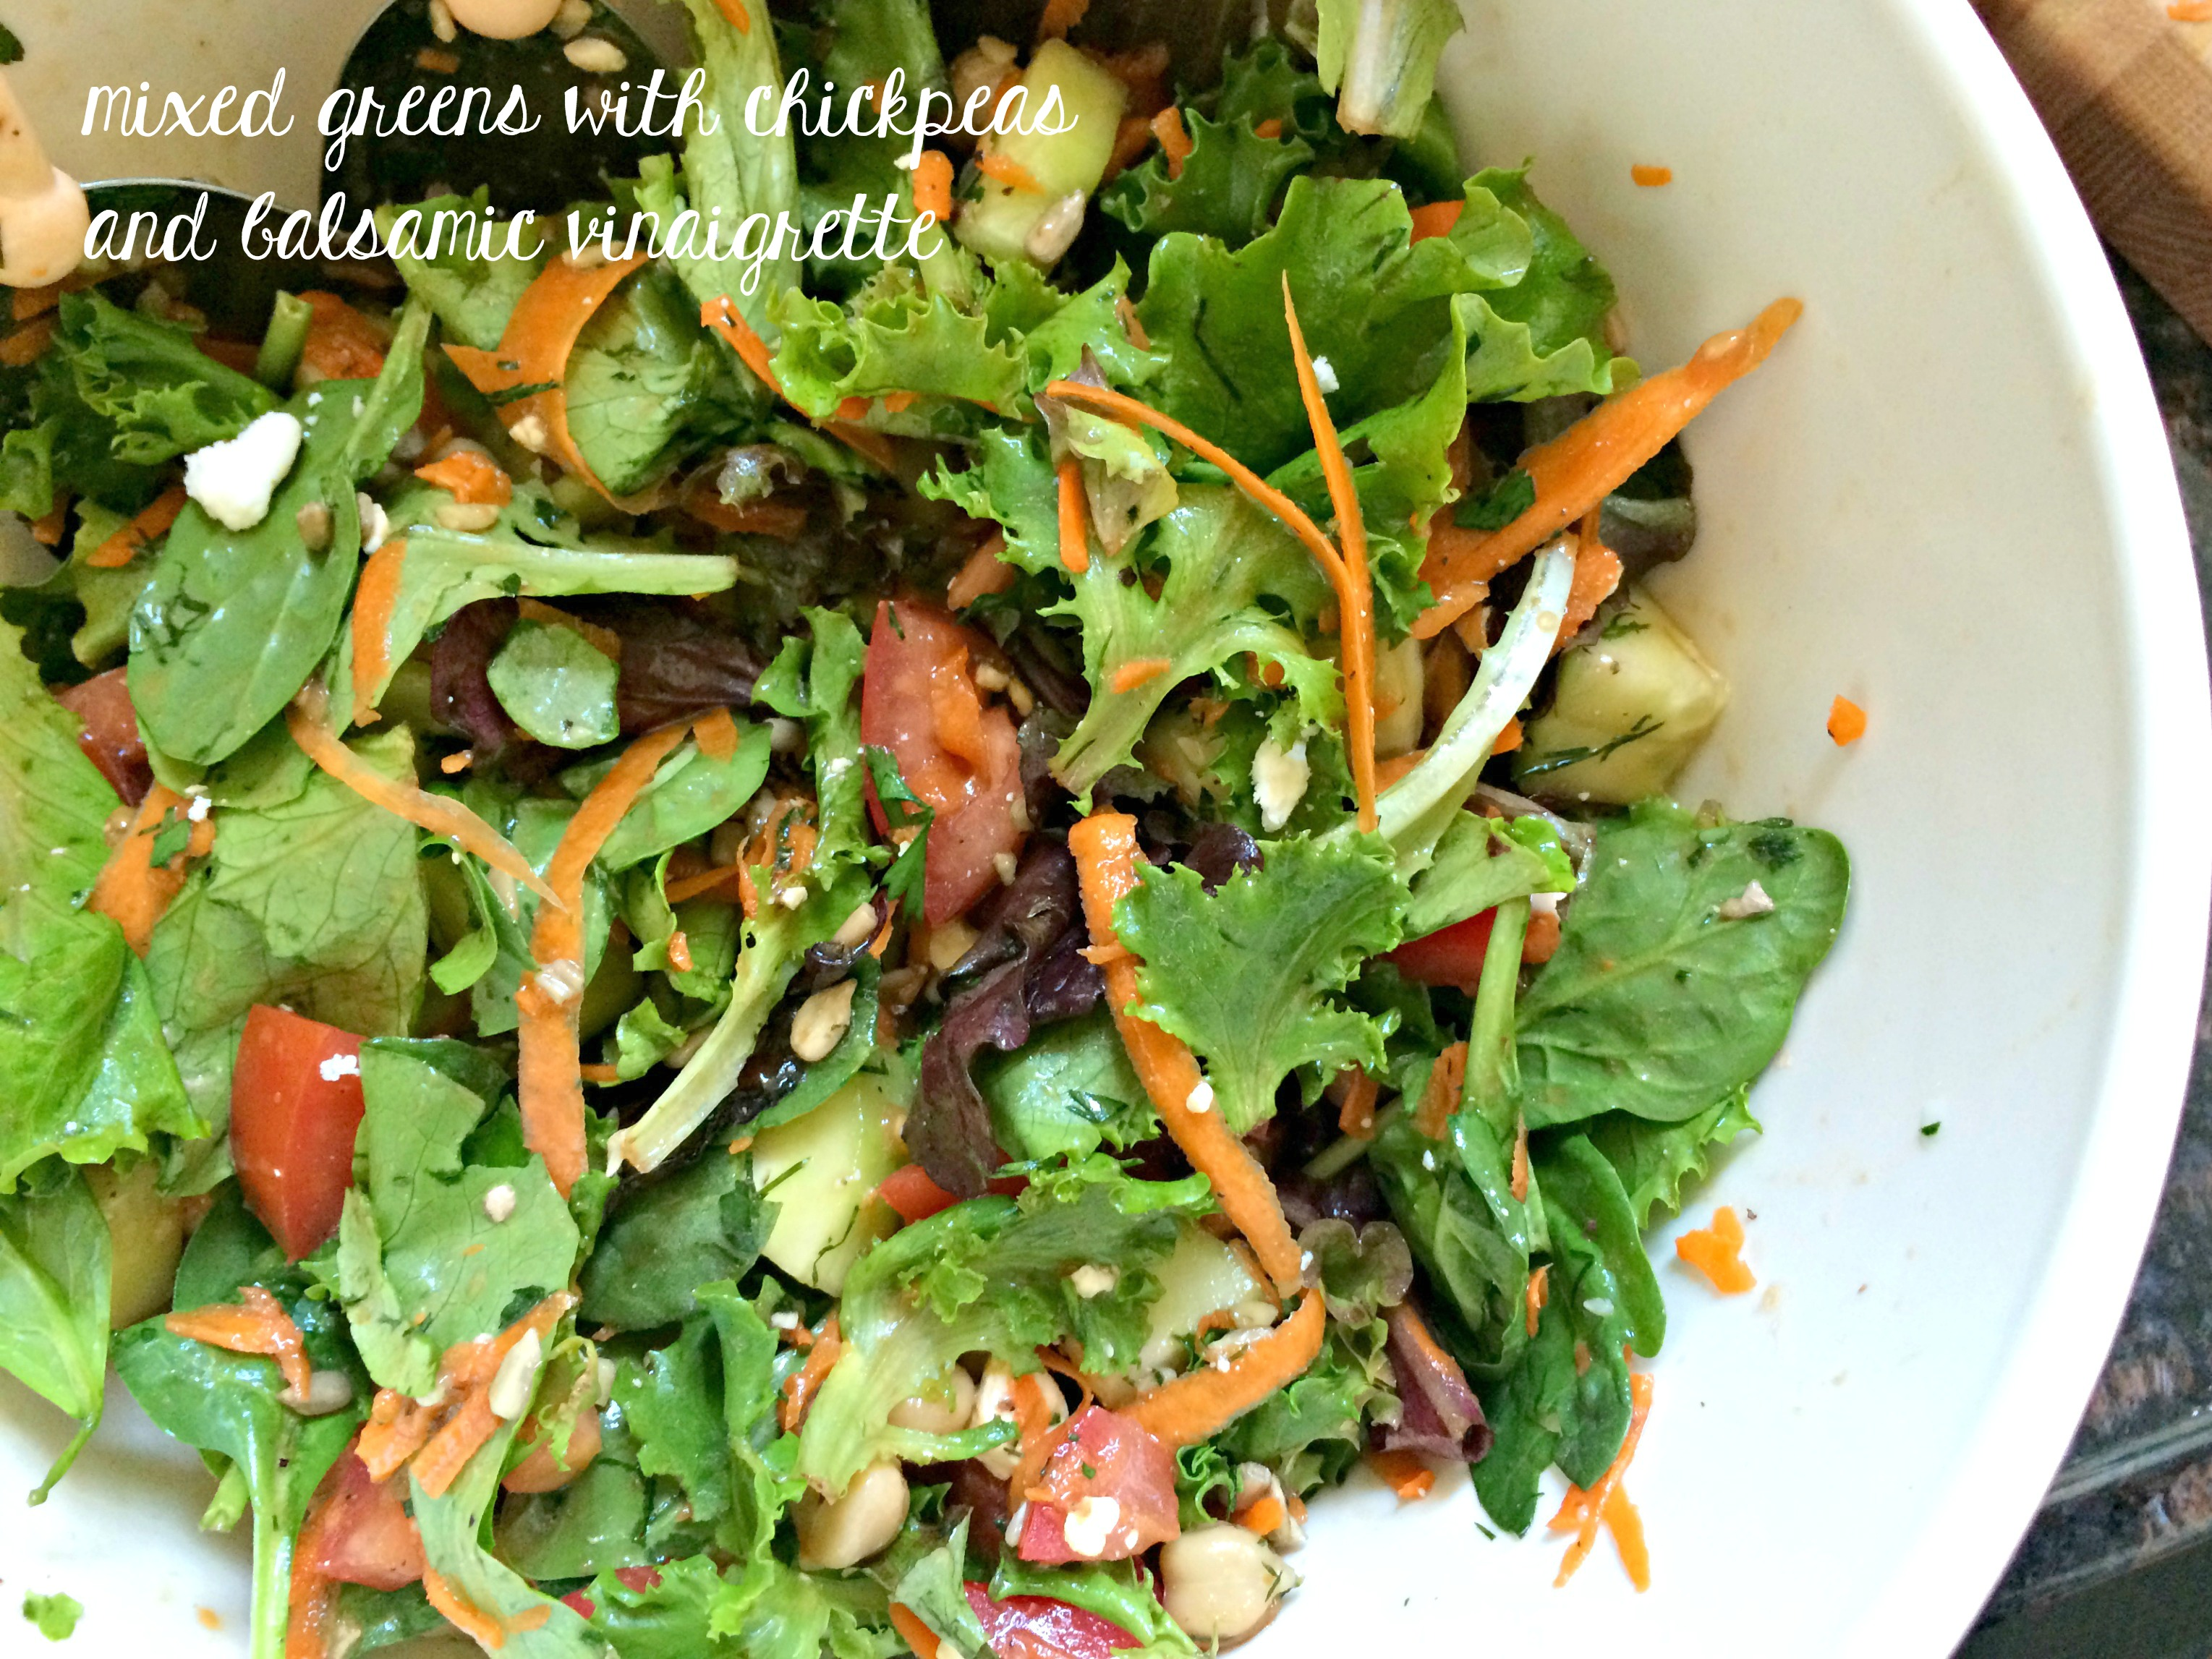 mixed greens with chickpeas and balsamic vinaigrette recipe